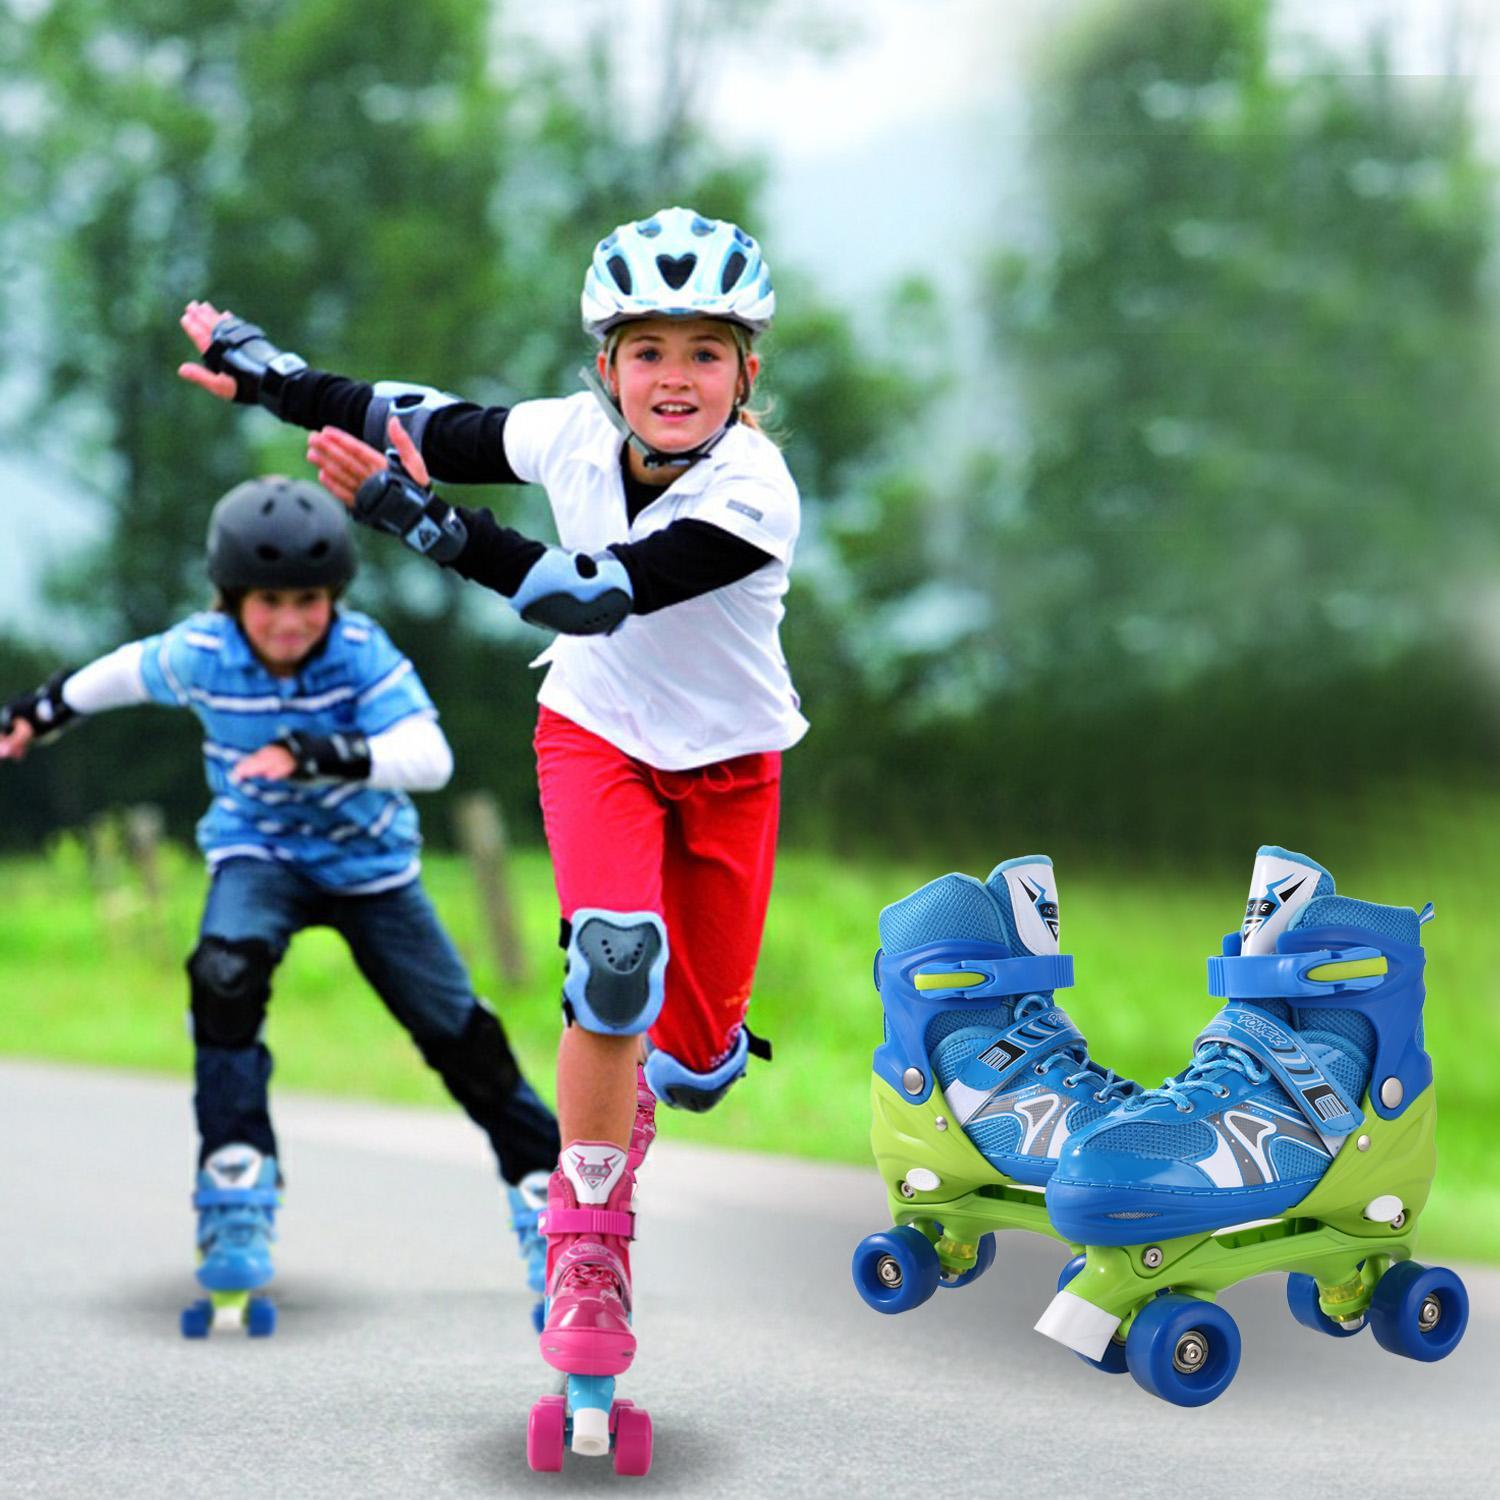 Double Row Skates for Boys and Girls PP and PVC Wheel Indoor Outdoor Roller Children Tracer Adjustable HPPY